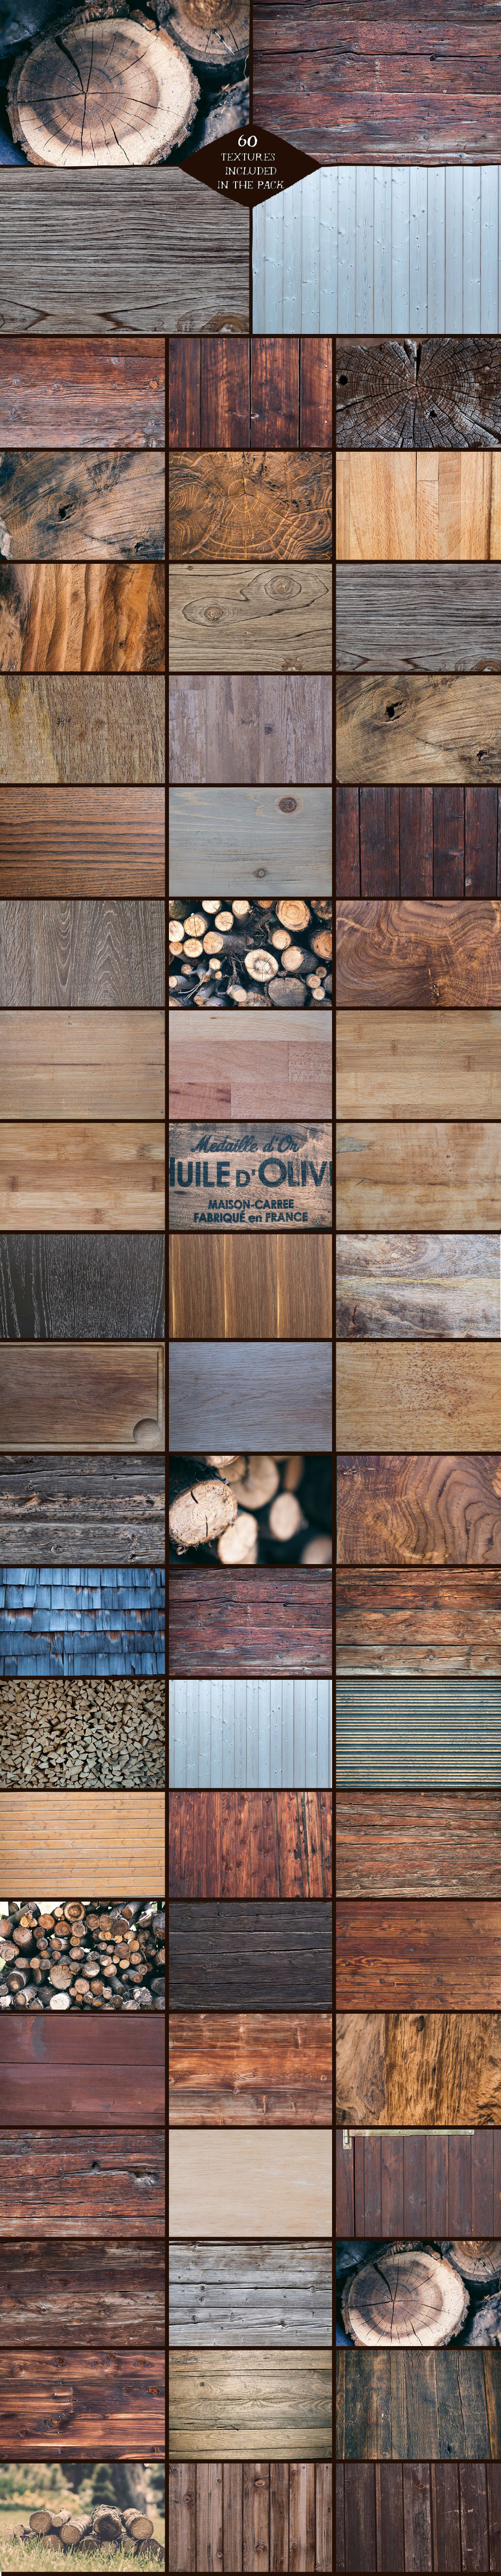 Totally Extensive Textures and Patterns Bundle